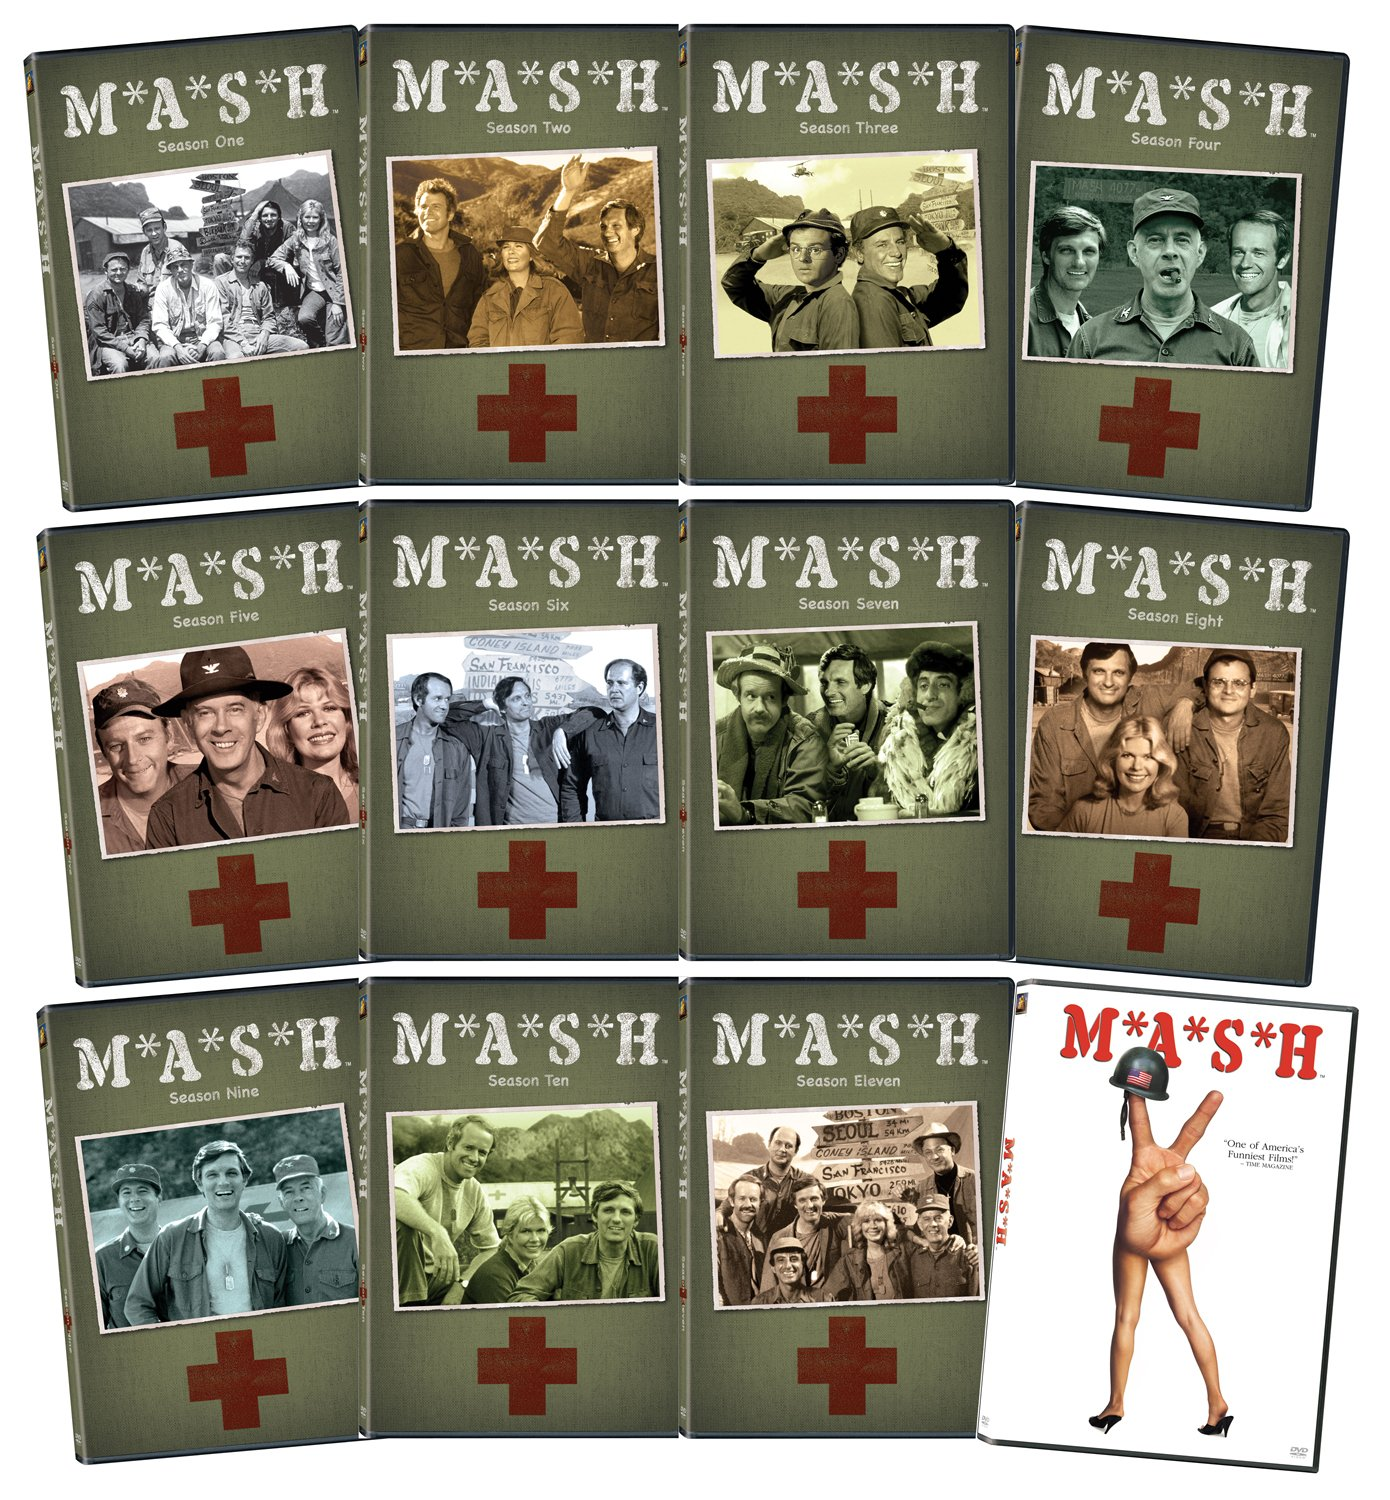 M*A*S*H: The Complete Series + Movie by 20th Century Fox